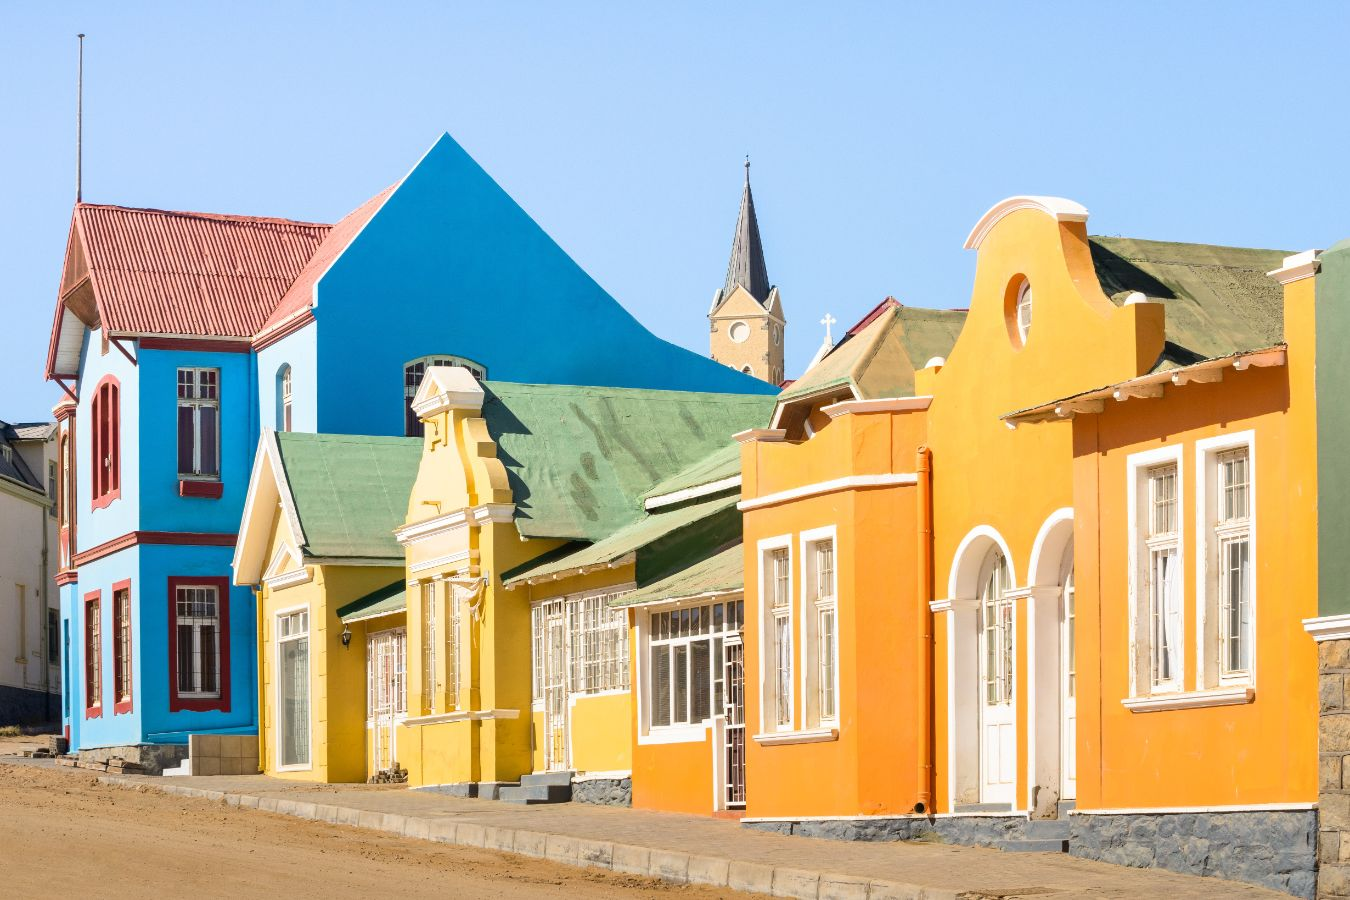 Namibie - Luderitz - Maisons colorées de style germanique colonial